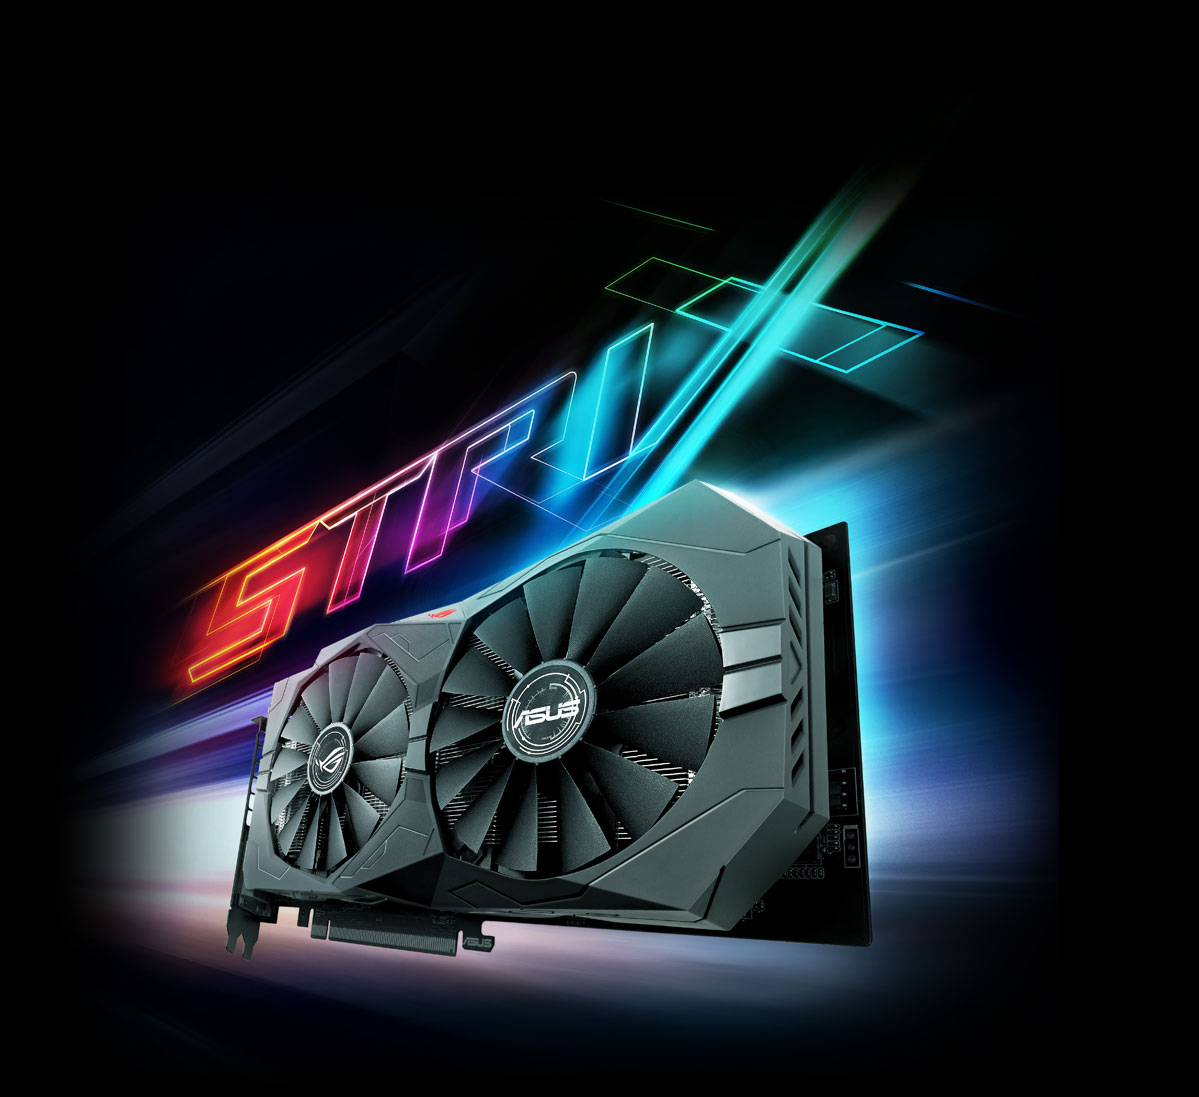 ROG-STRIX-RX570-O4G-GAMING | Graphics Cards | ASUS USA